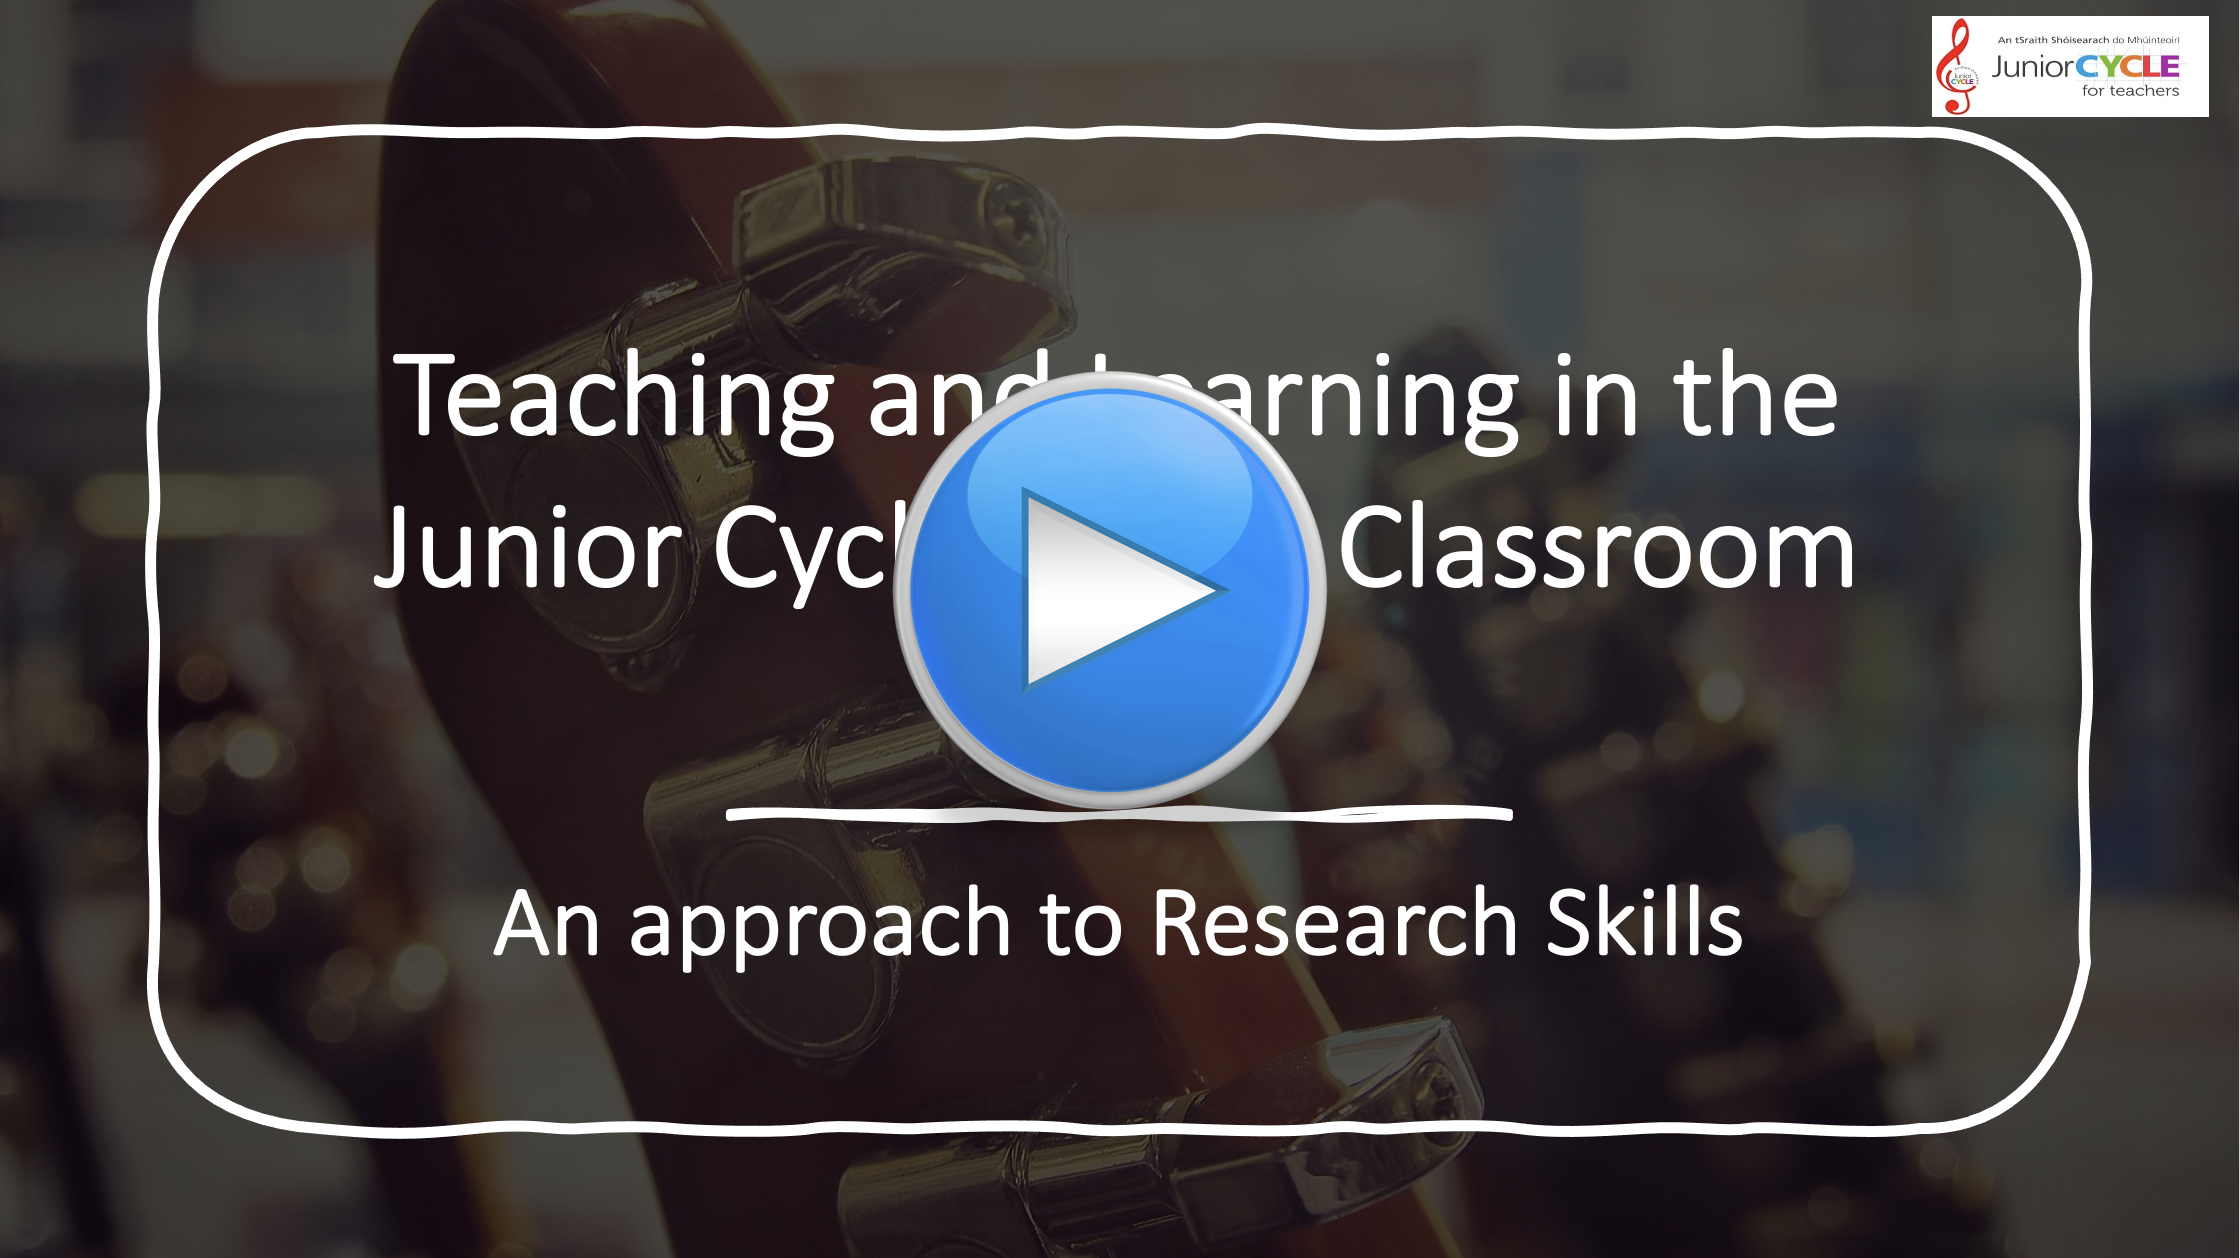 Online Learning an Approach to Research Skills